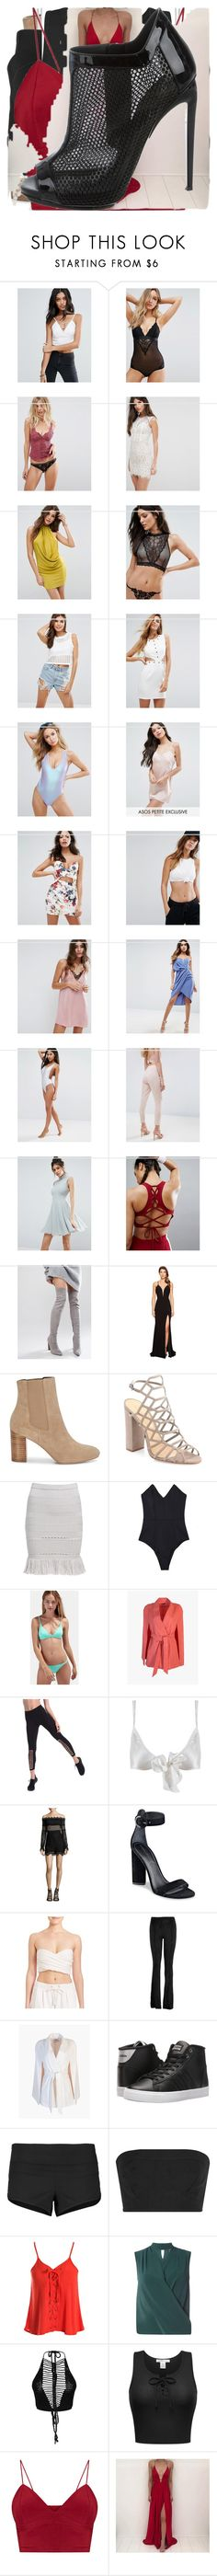 """Untitled #2101"" by bucketlistdiary on Polyvore featuring Glamorous, Y.A.S, Free People, NaaNaa, ASOS, Missguided, Seafolly, South Beach, Truffle and Faviana"